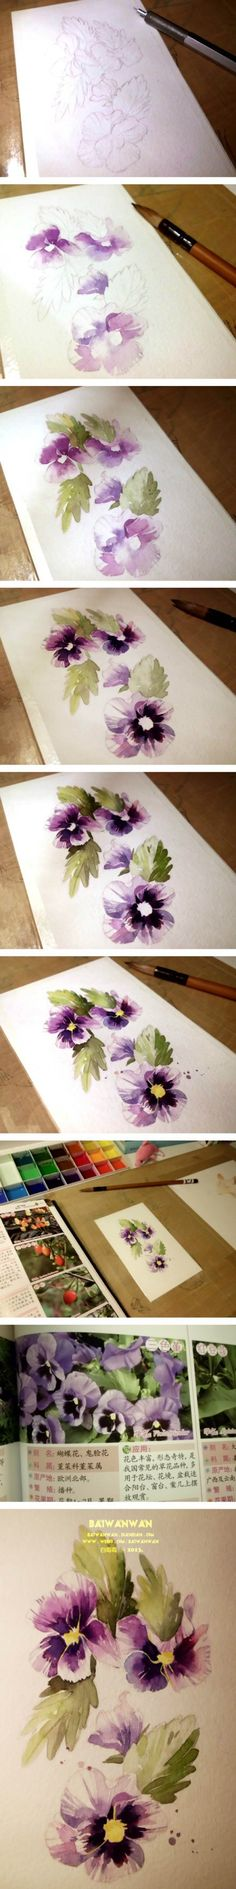 Pansies ...step by step beauty ♥